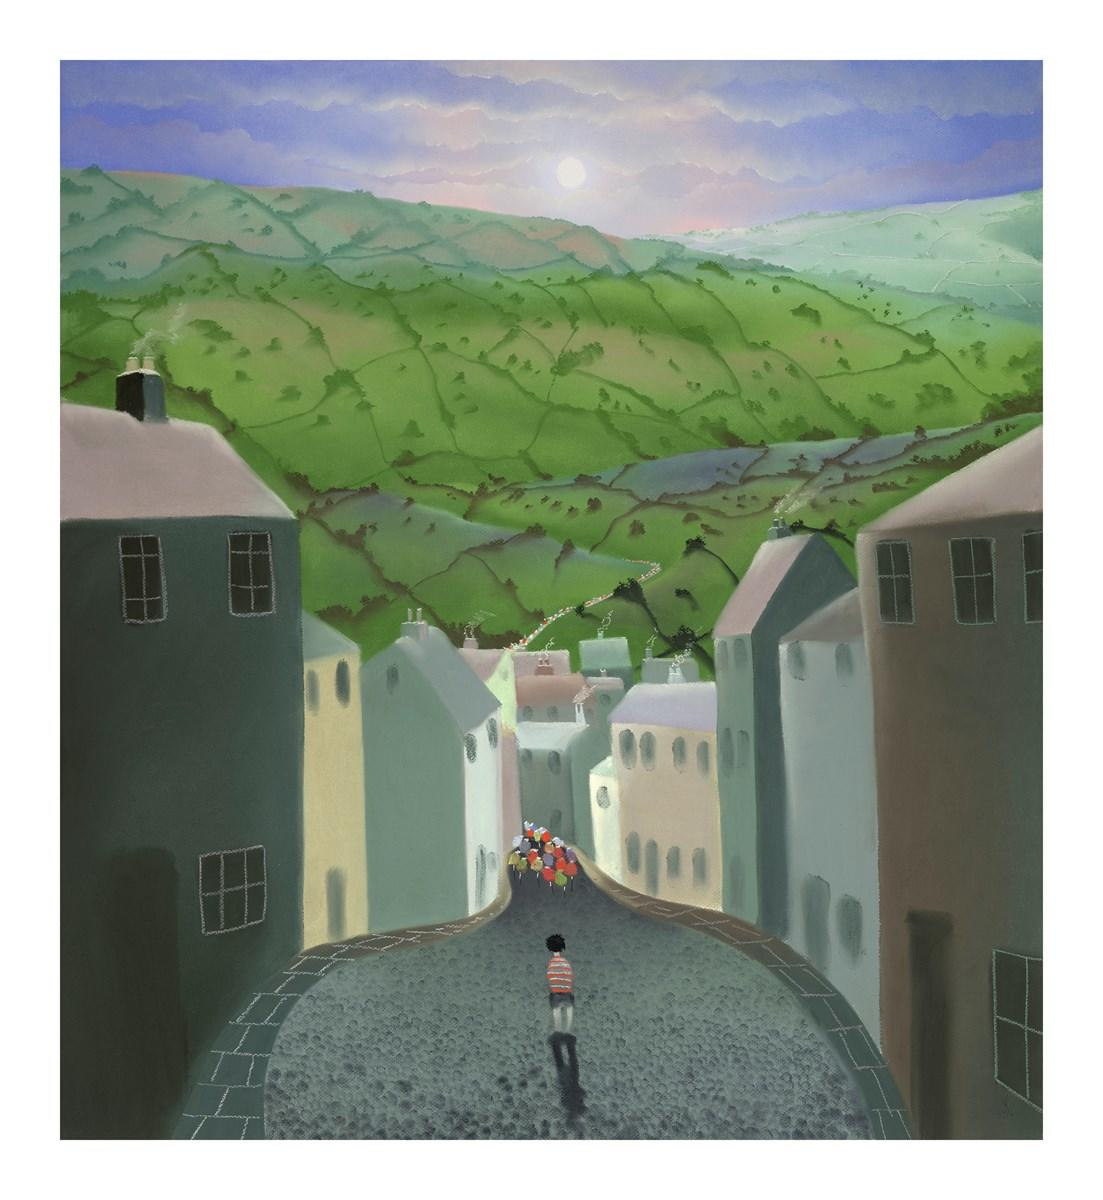 The Boy Without a Bike by Mackenzie Thorpe - Limited Edition LTHP036